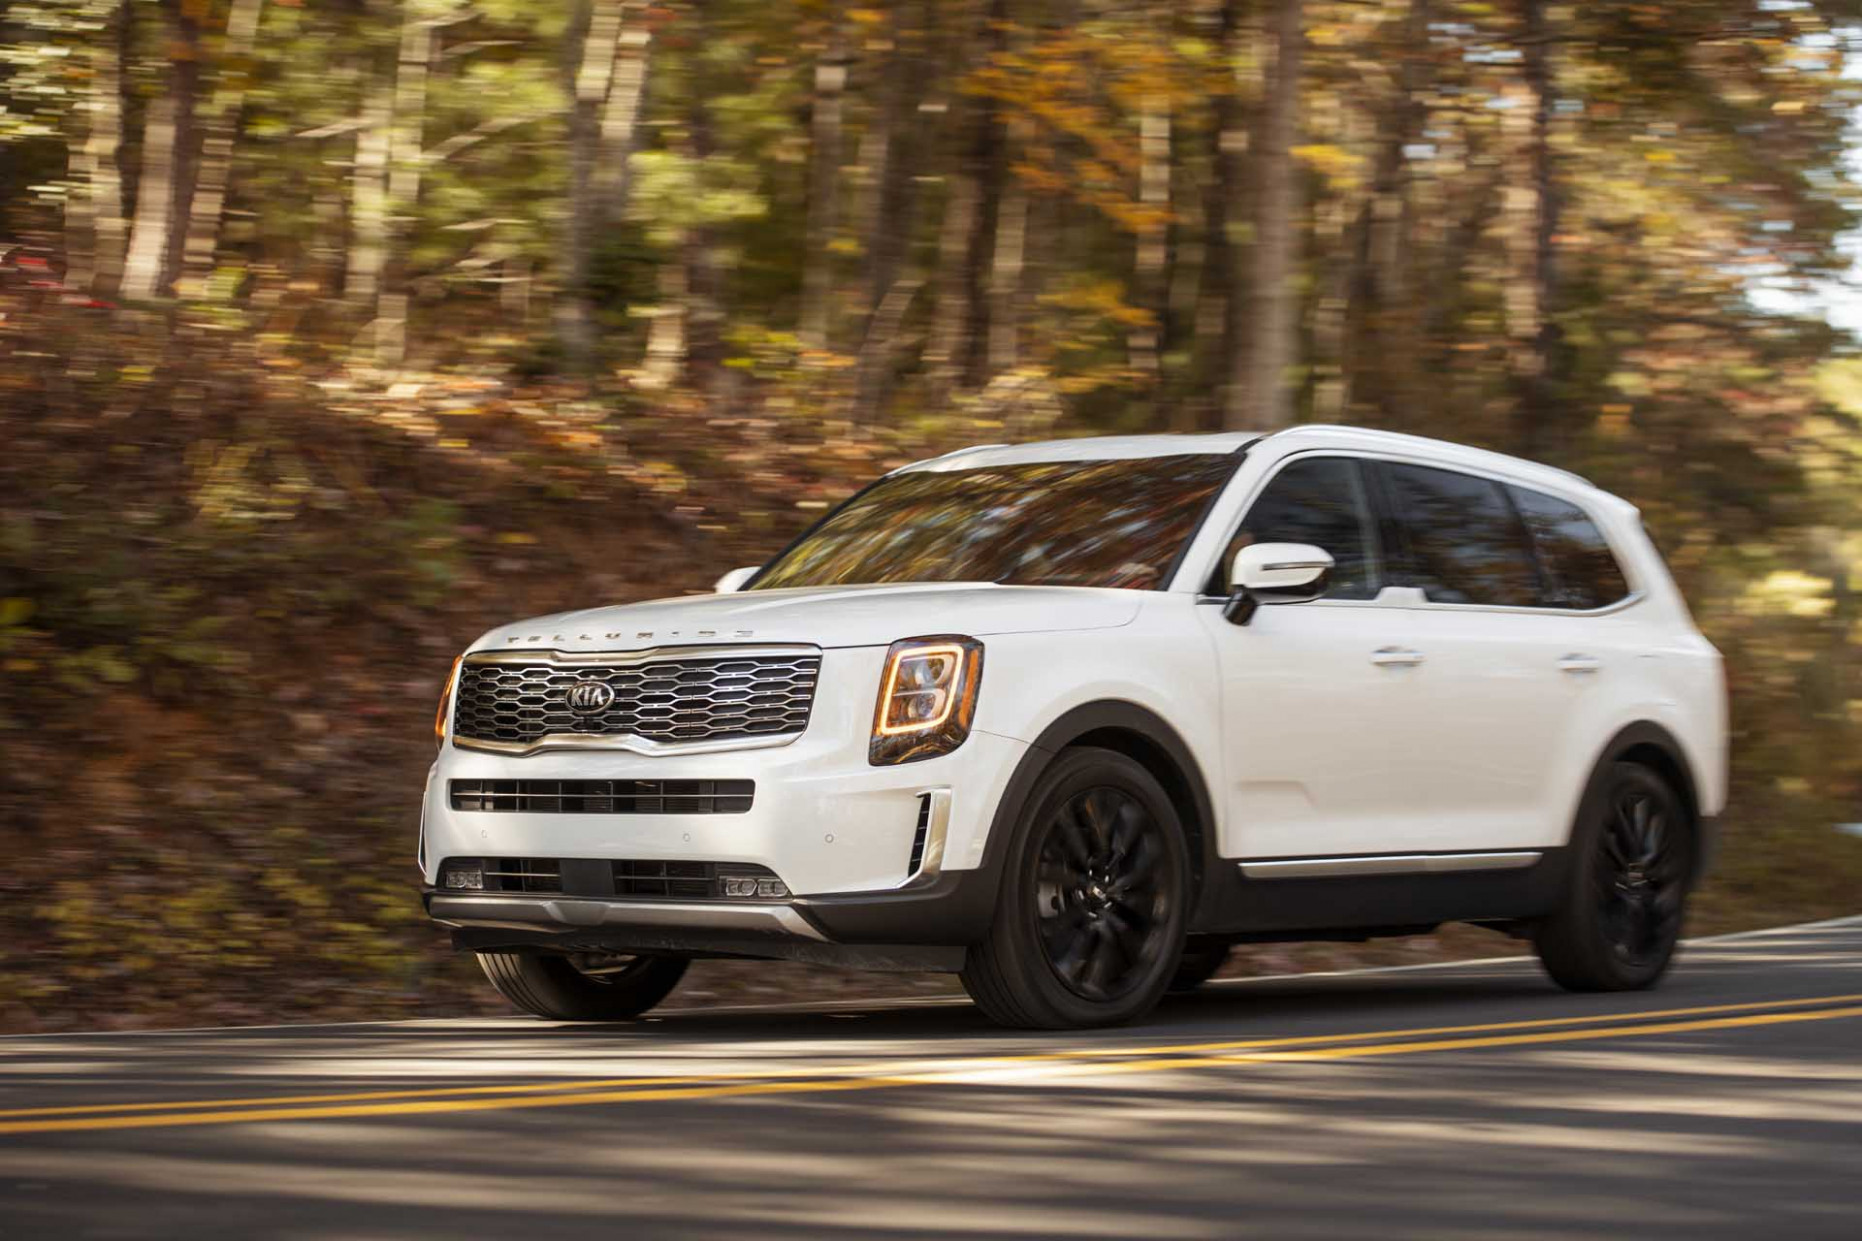 7 Kia Telluride Review, Ratings, Specs, Prices, and Photos ..